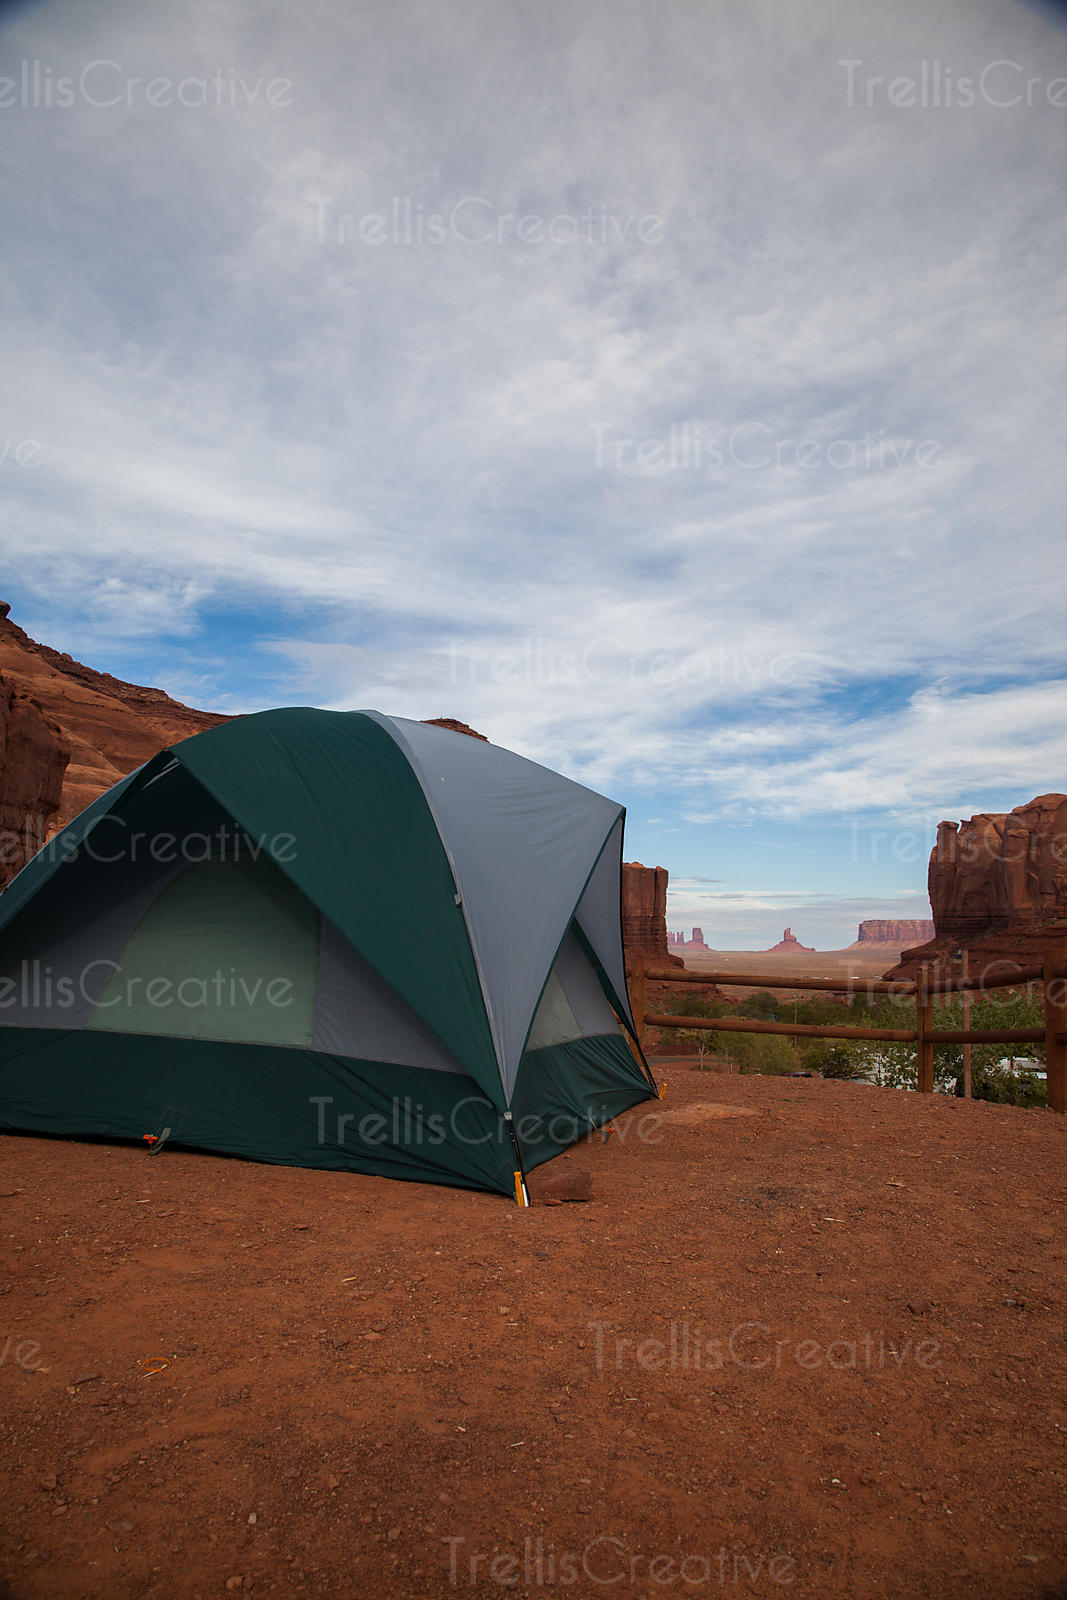 Camping on a bluff in Monument Valley Navajo Tribal Park, Utah